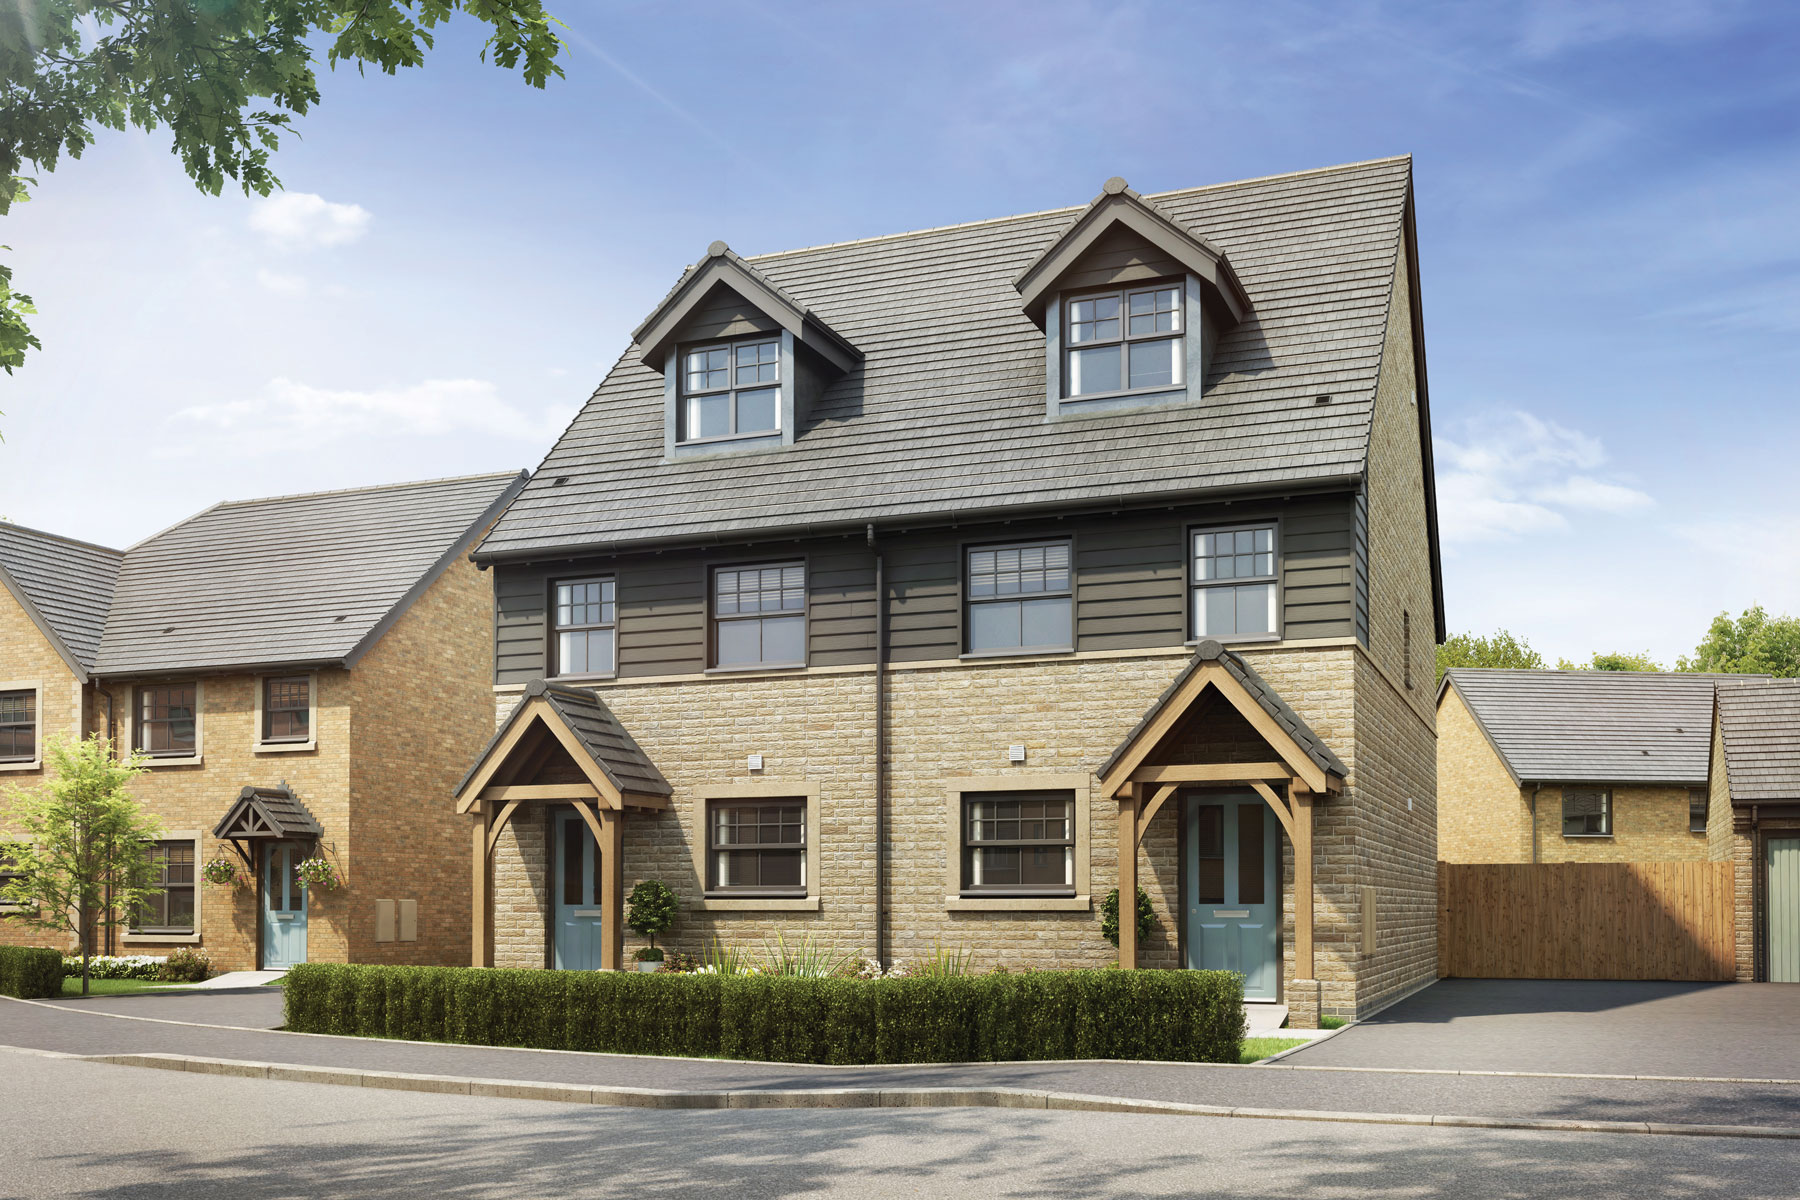 Alton-G-PB35G-The-Village-Street-V2-Plot-7-8